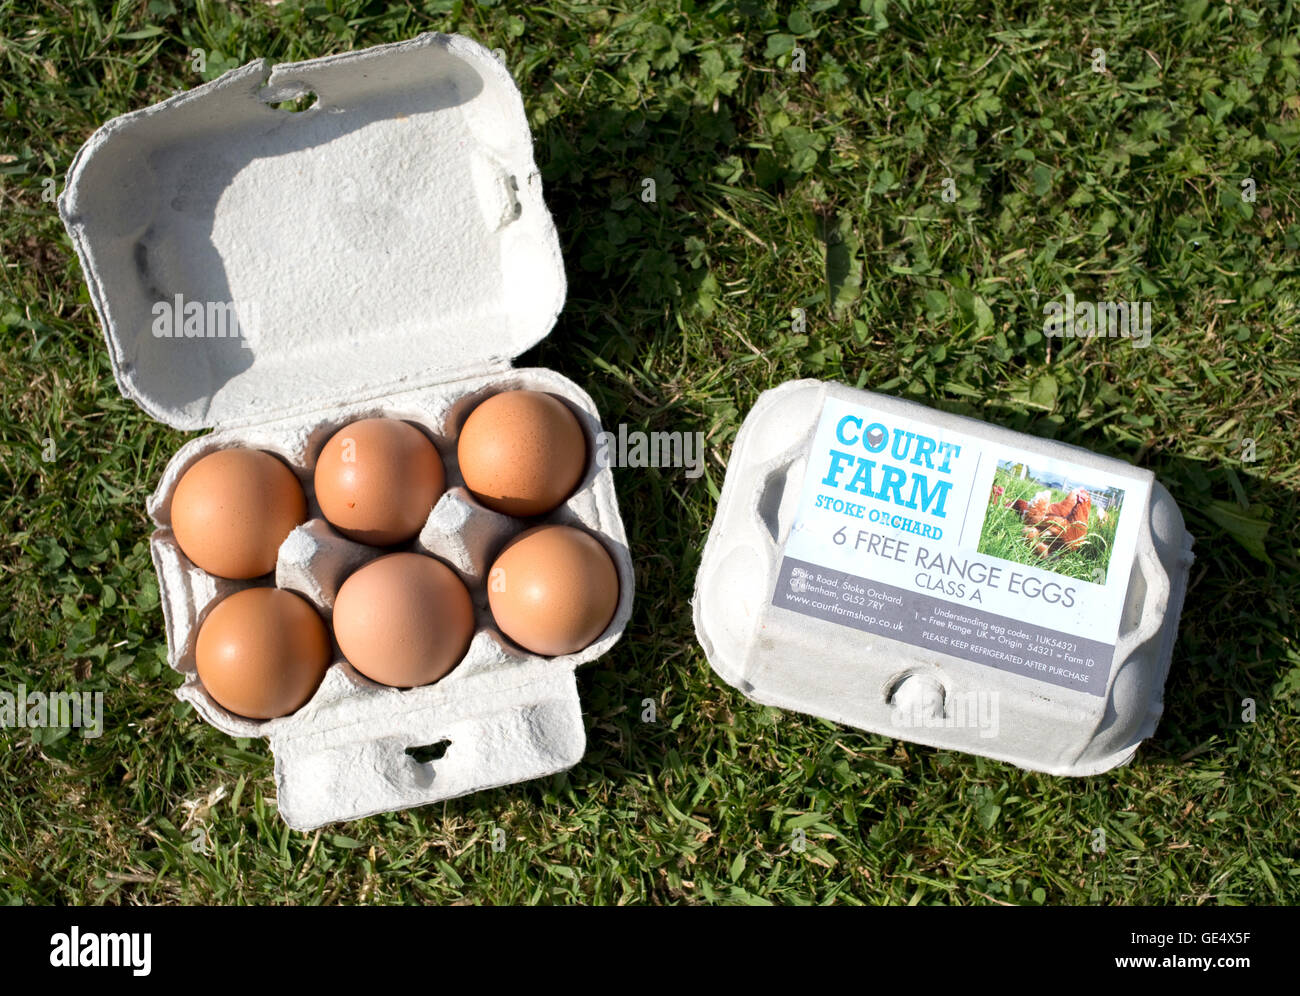 Two boxes of free range eggs Class A UK Stock Photo: 111975739 - Alamy